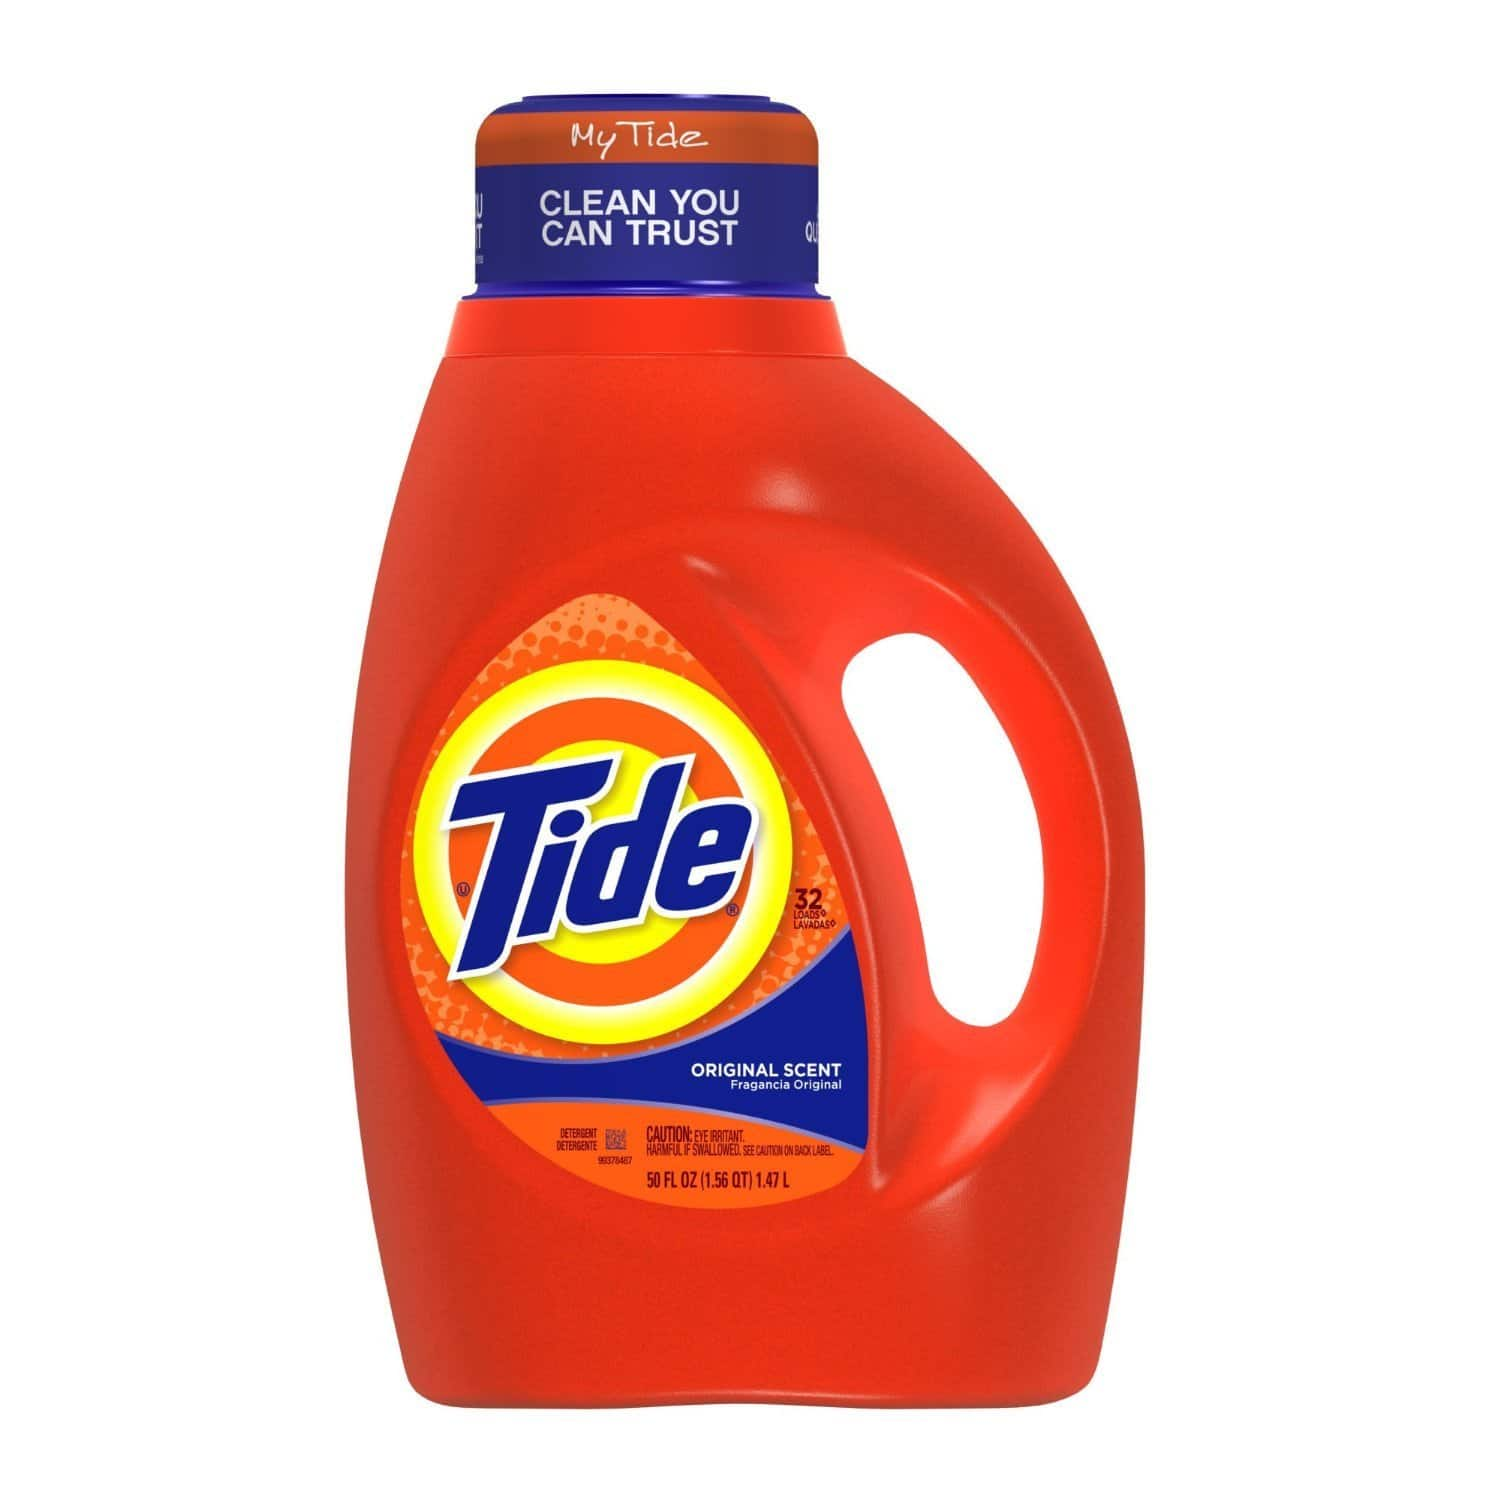 Tide Detergent $6.75 per bottle of 100 oz $10 giftcard with 3 laundry, cleaning and, paper @ Target or Online